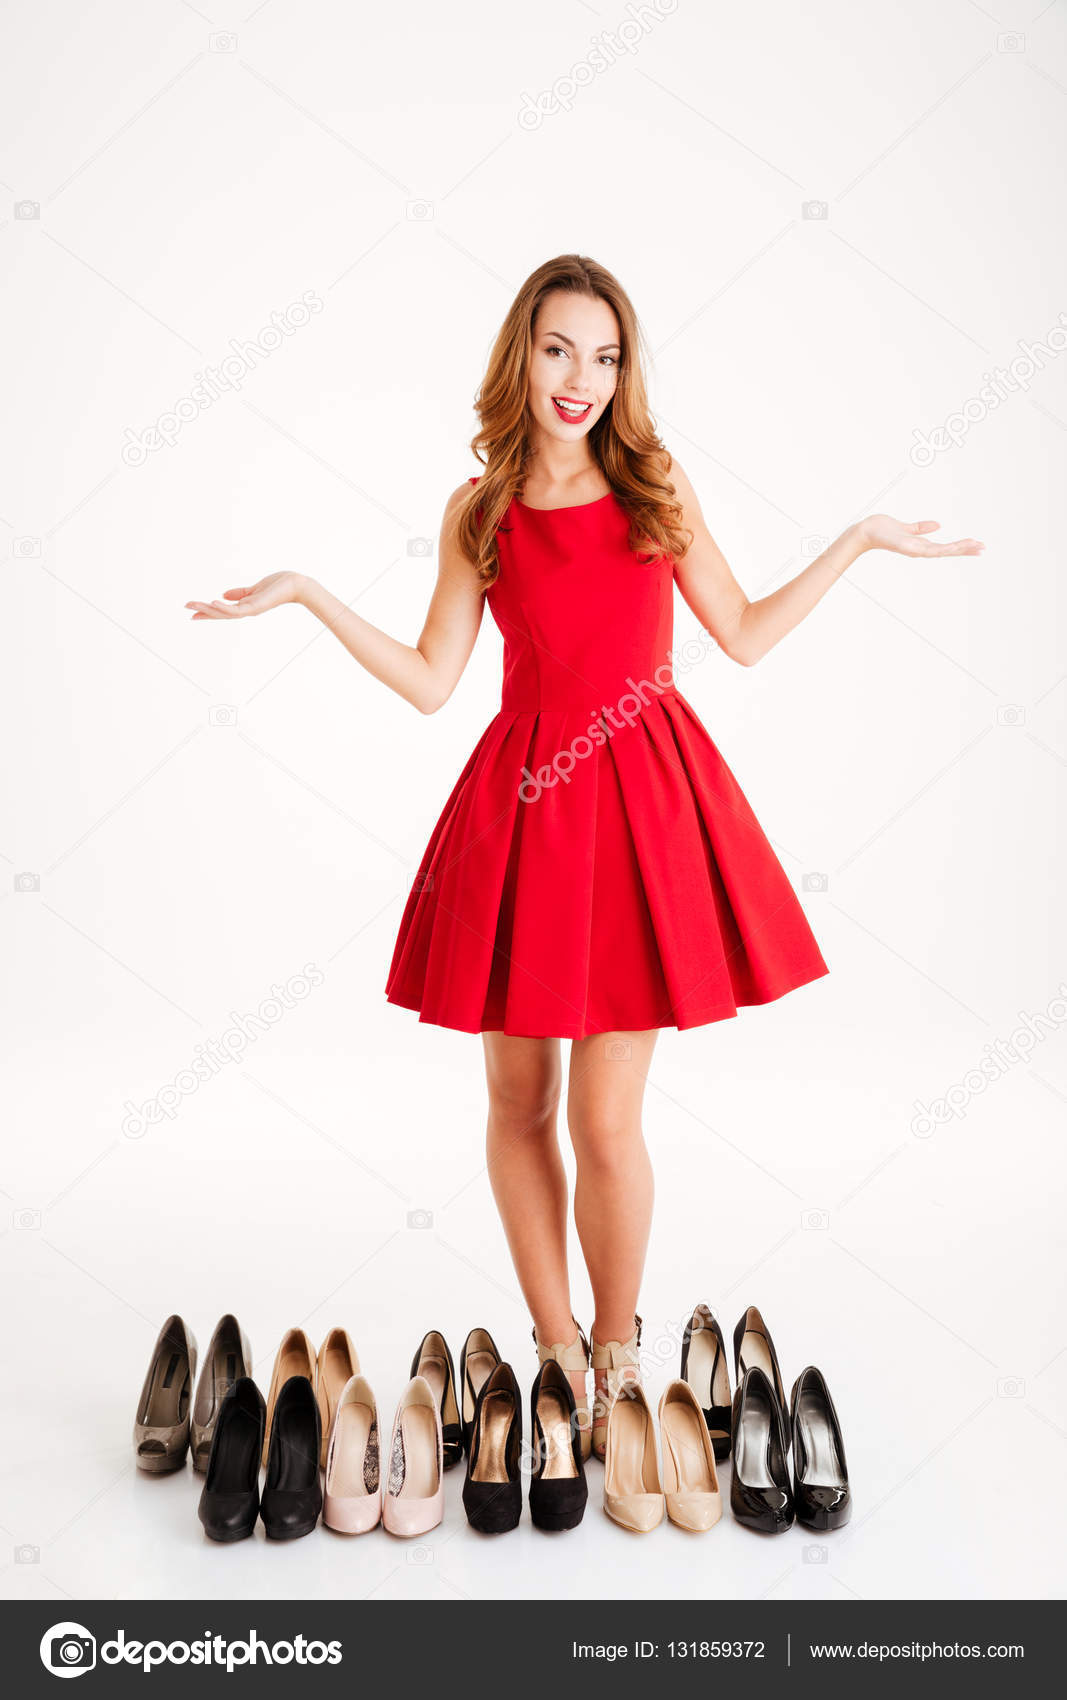 smiling woman in red dress choosing pairs of shoes stock. Black Bedroom Furniture Sets. Home Design Ideas